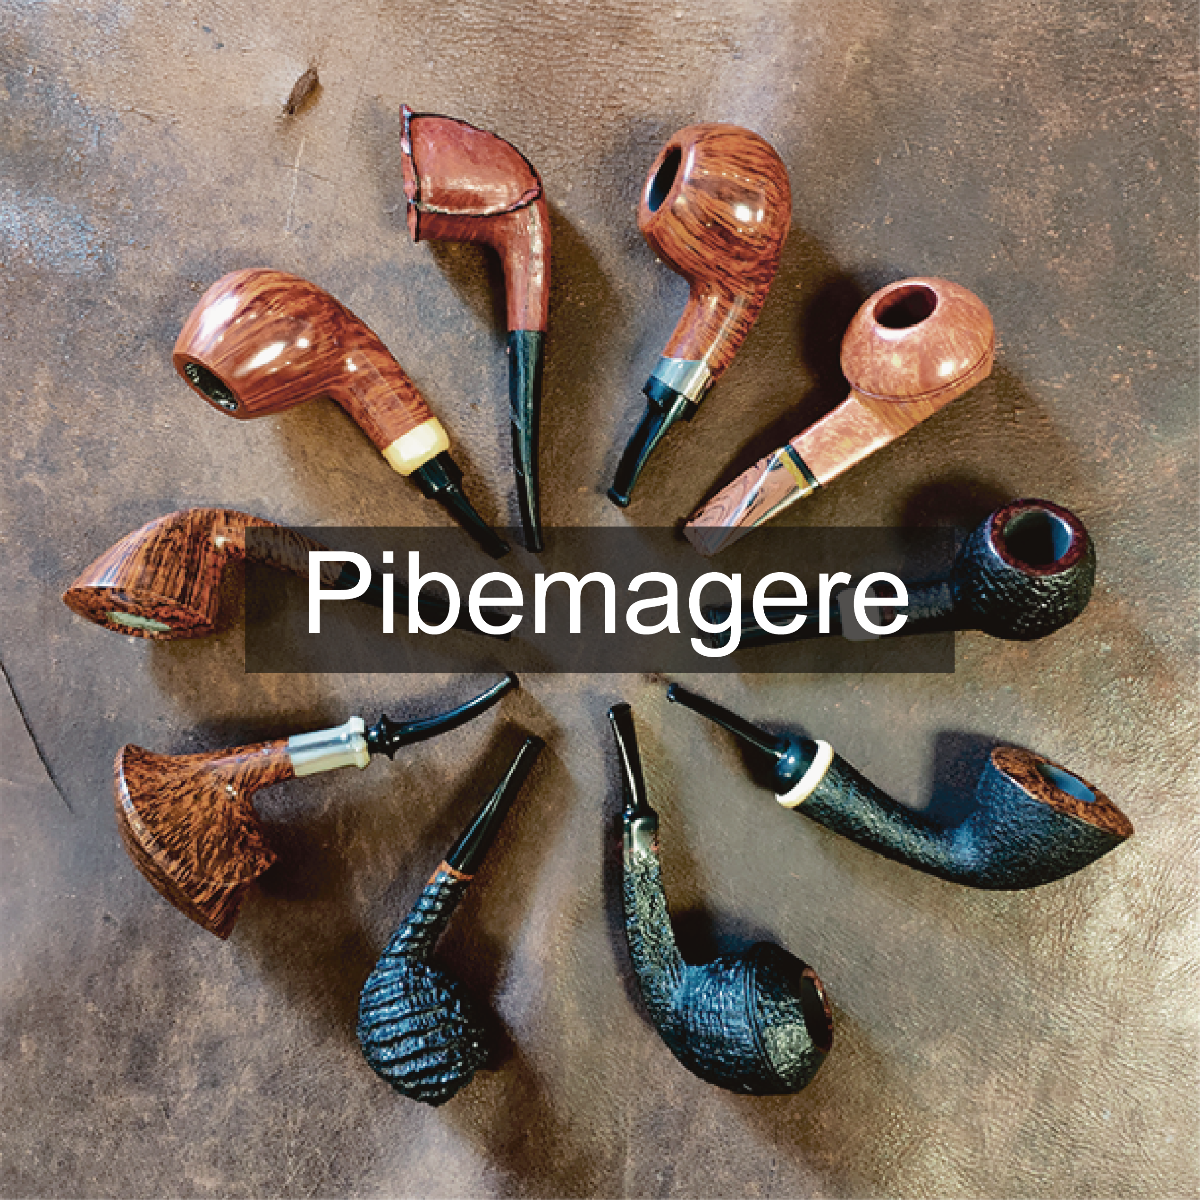 Pibemagere